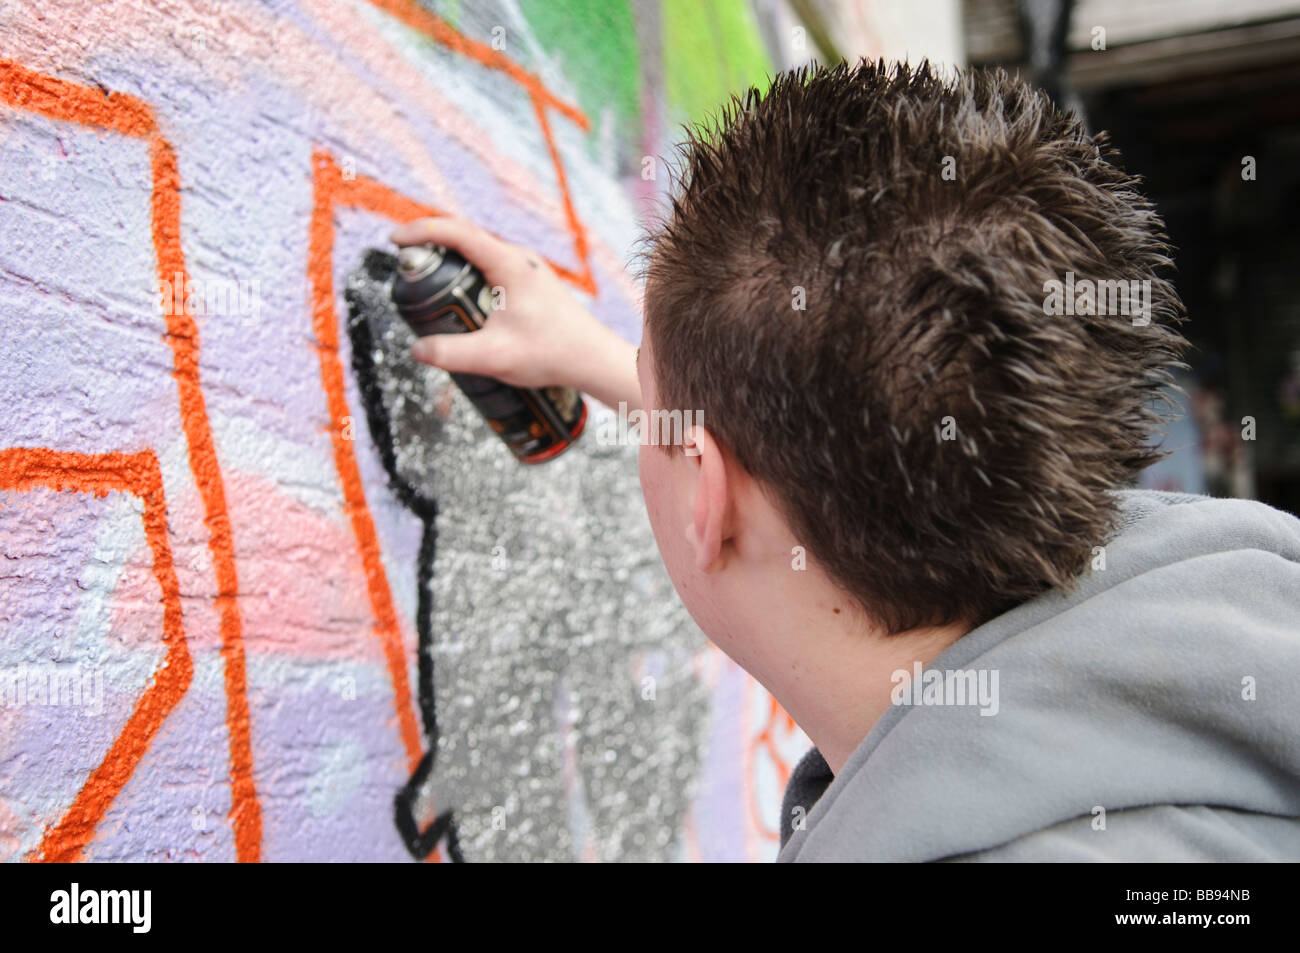 Teenage boy working on a grafitti piece on an exterior wall. - Stock Image